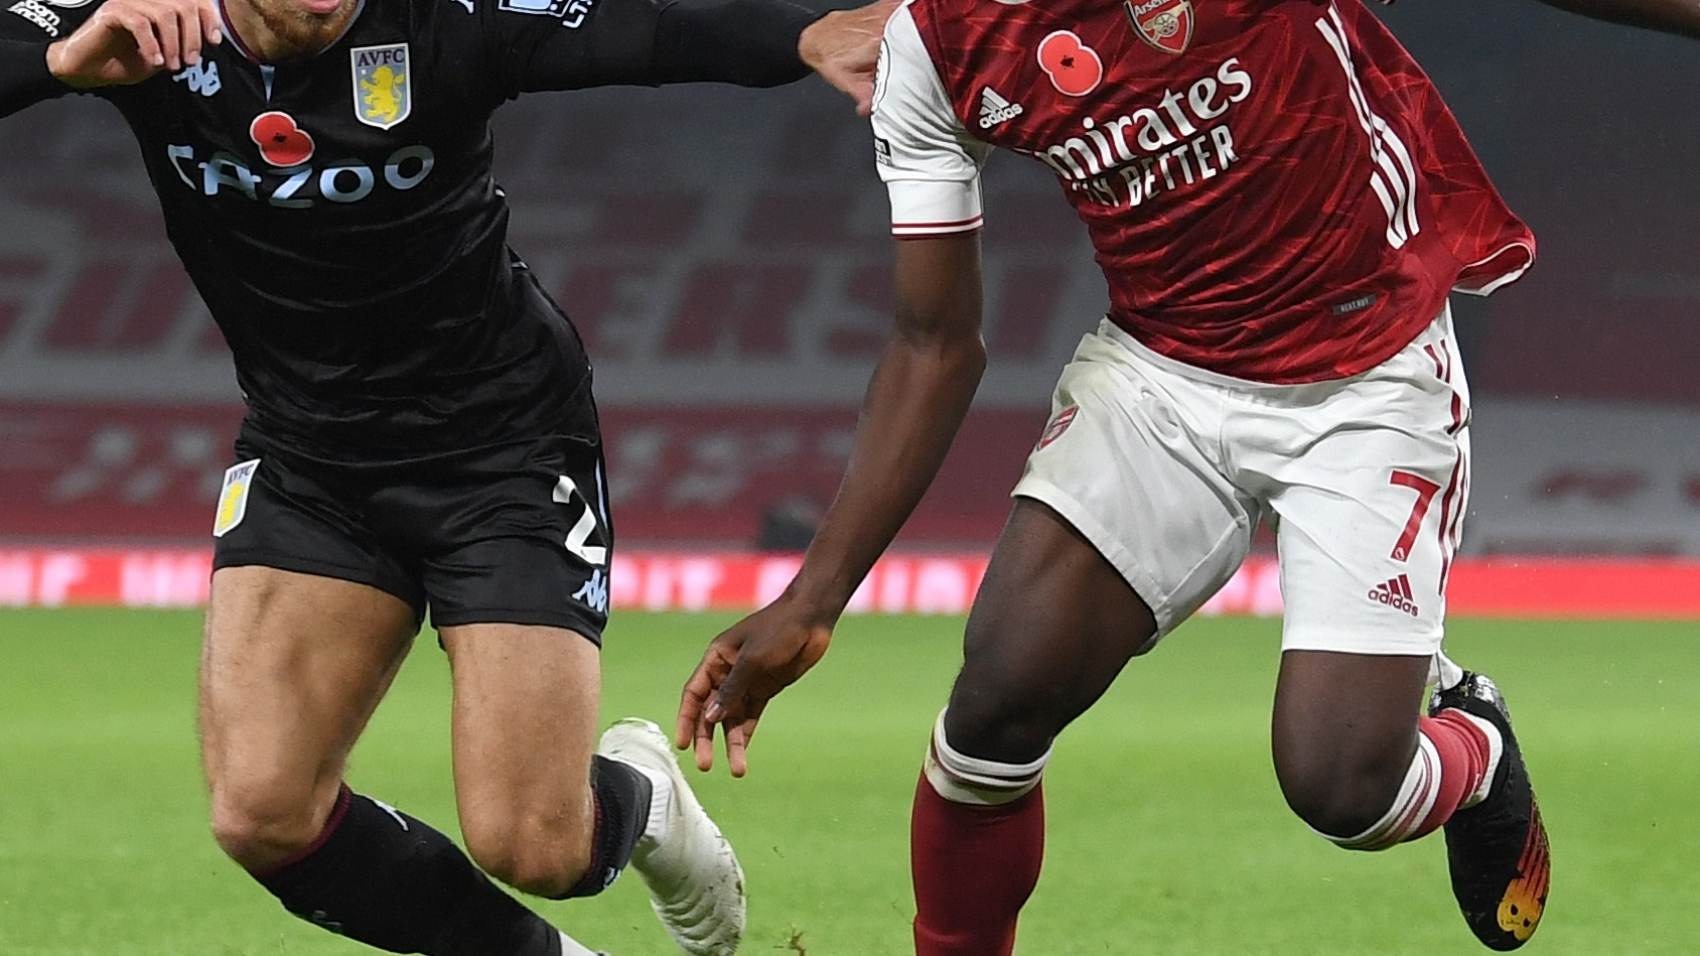 LONDON, ENGLAND - NOVEMBER 08: Bukayo Saka of Arsenal takes on Matthew Cash of Villa during the Premier League match between Arsenal and Aston Villa at Emirates Stadium on November 08, 2020 in London, England. (Photo by David Price/Arsenal FC via Getty Images)